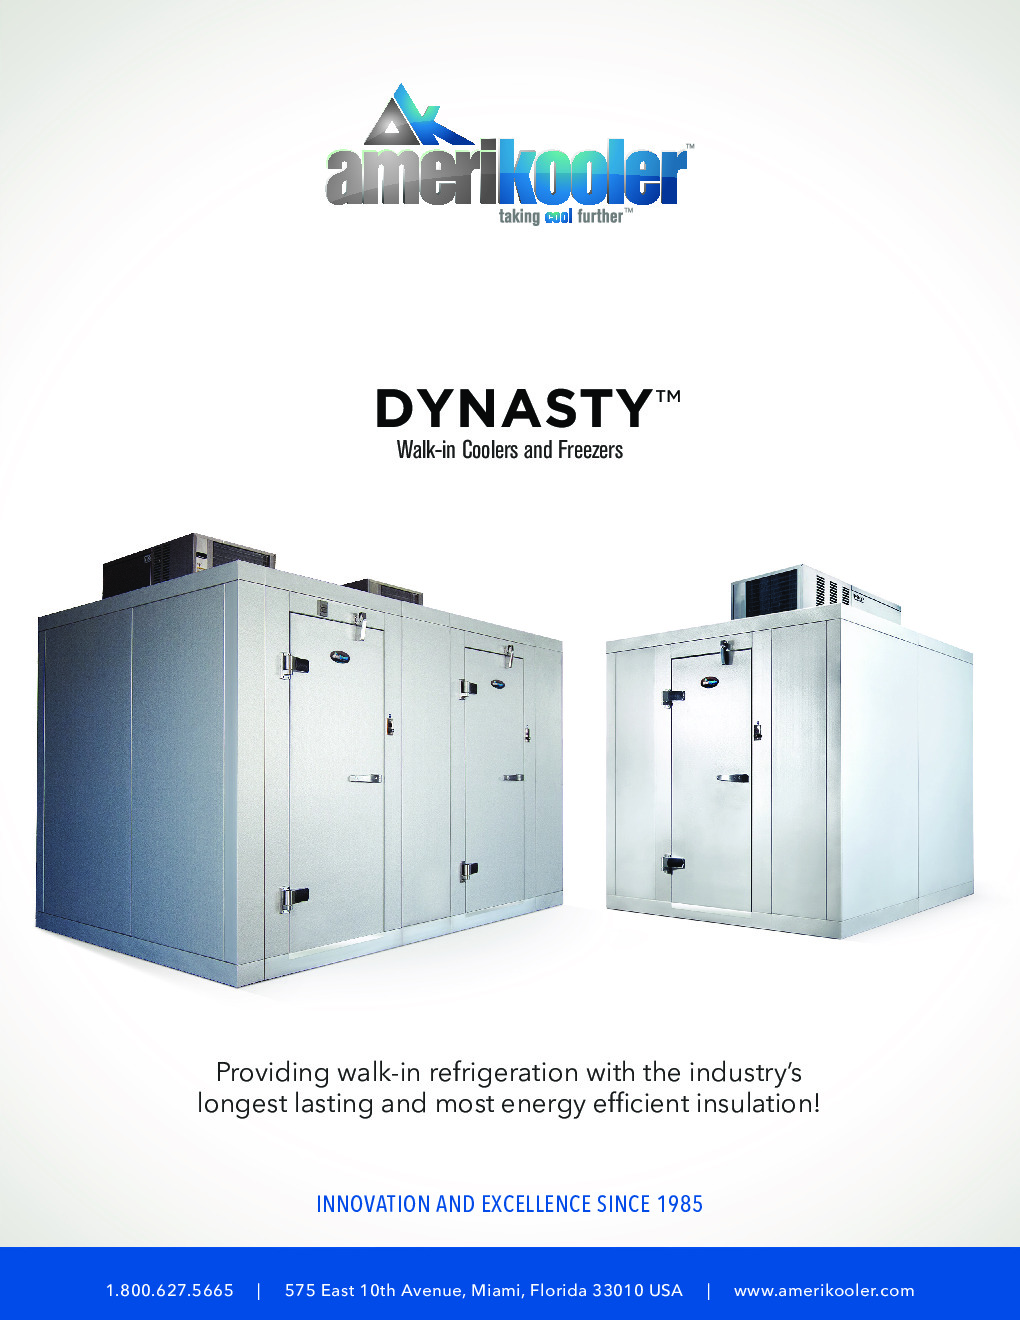 AmeriKooler DW091177F-5/6-SC 9' X 11' Walk-In Cooler, 6' L Cooler with Floor and 5' L Freezer, Self Contained